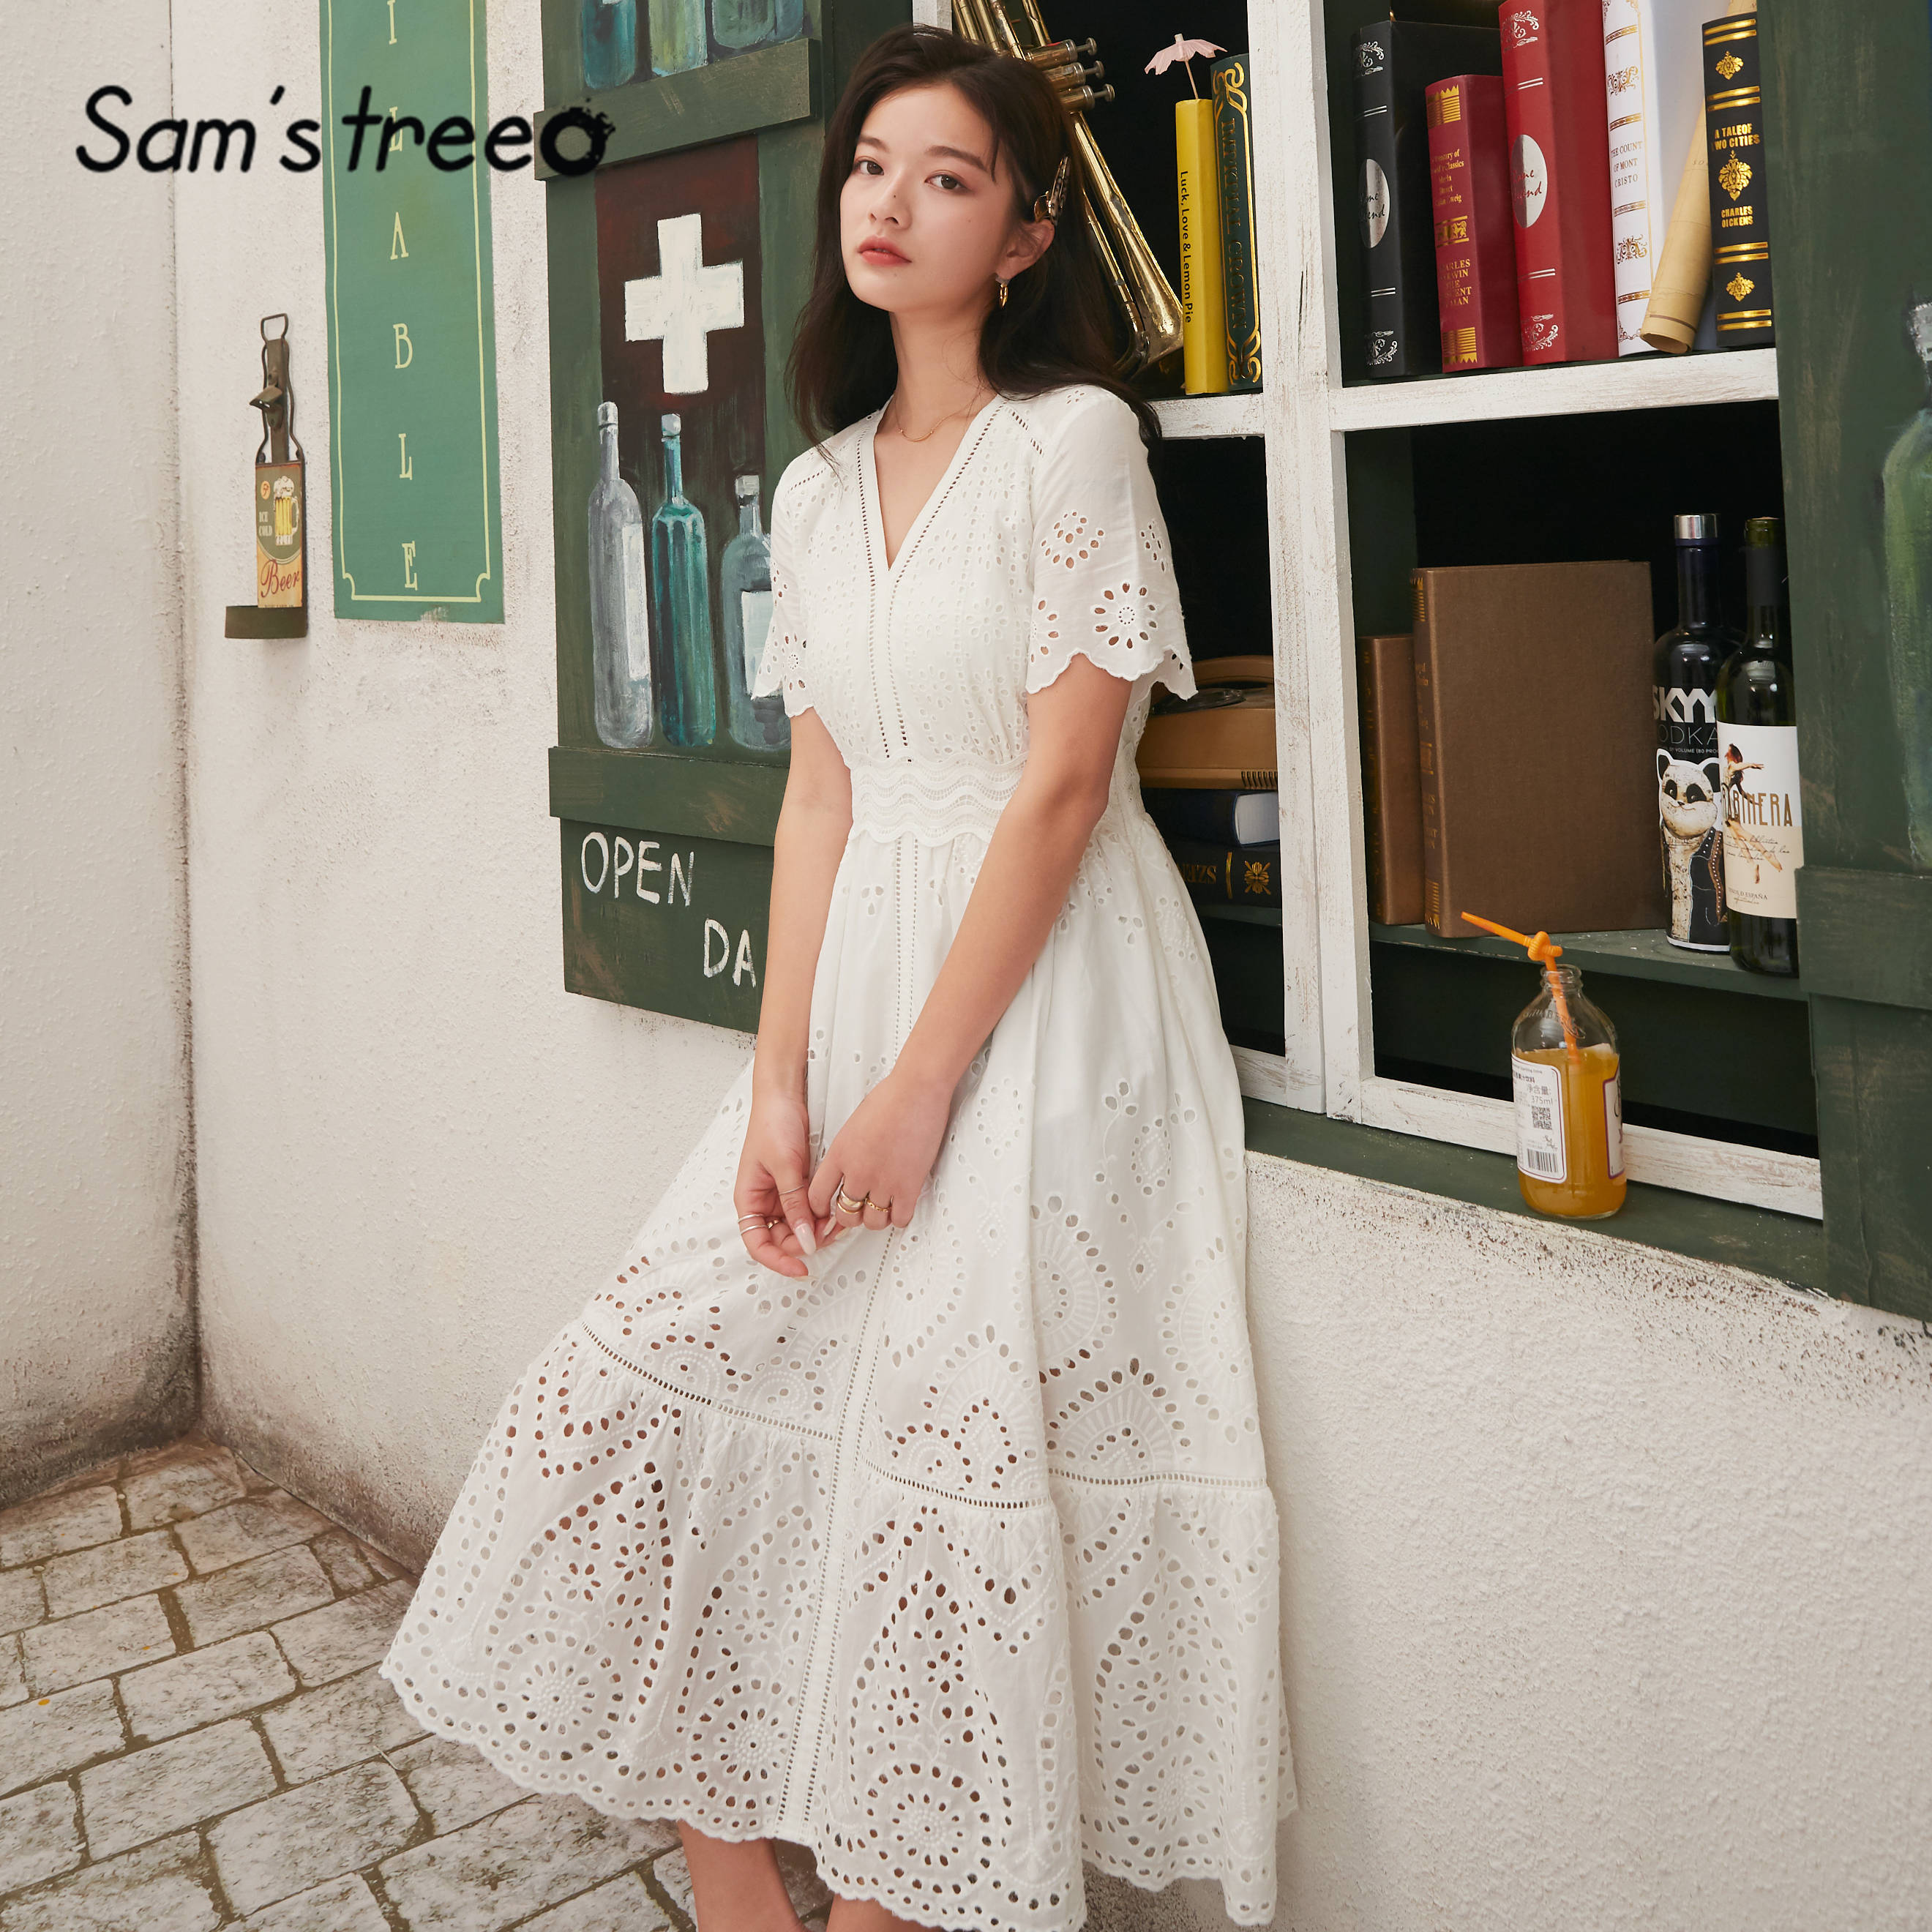 SAM'S TREE White Solid Contrast Lace Cut Out Casual Women Dresses 2020 Spring New Elastic Waist Short Sleeve Girly Holiday Dress